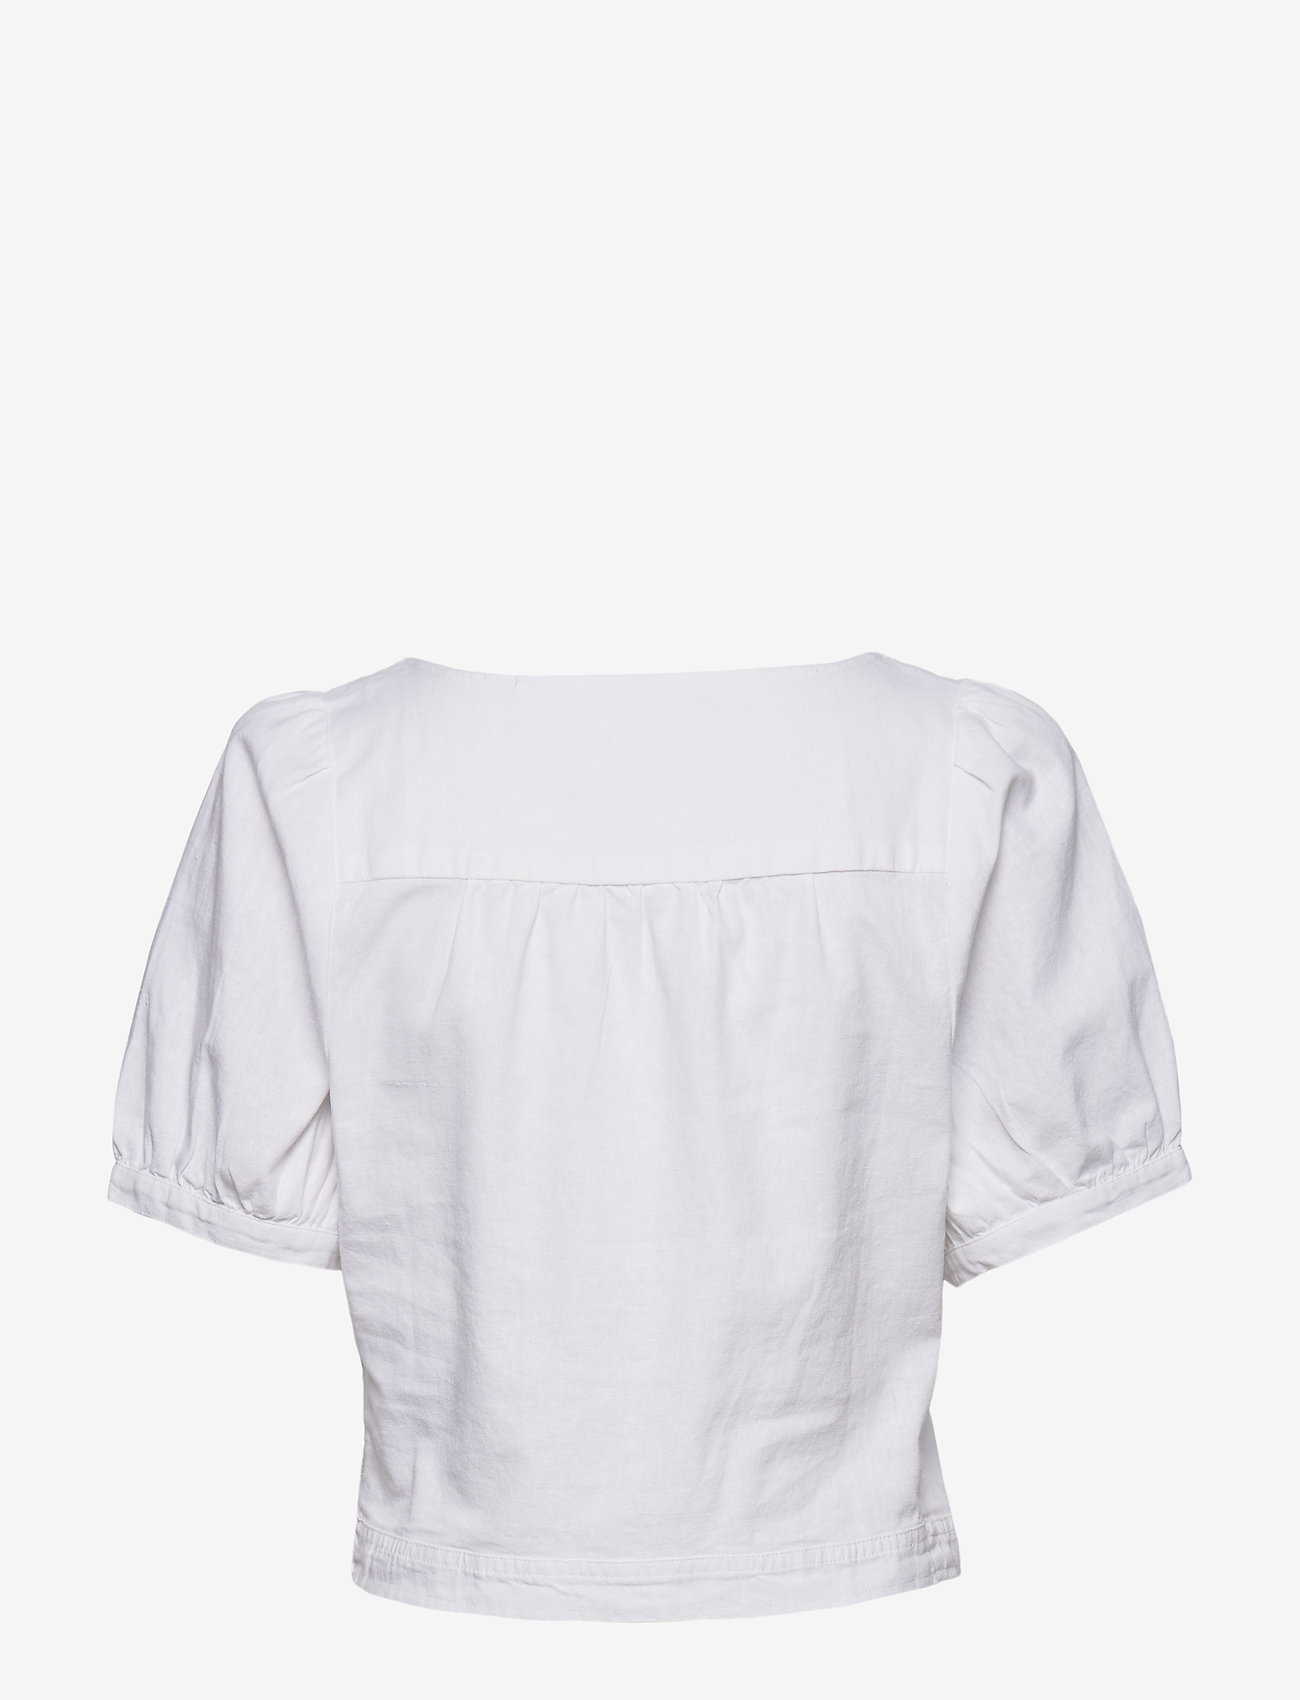 LEVI´S Women SIMONE TOP BRIGHT WHITE - Blouses & Shirts NEUTRALS